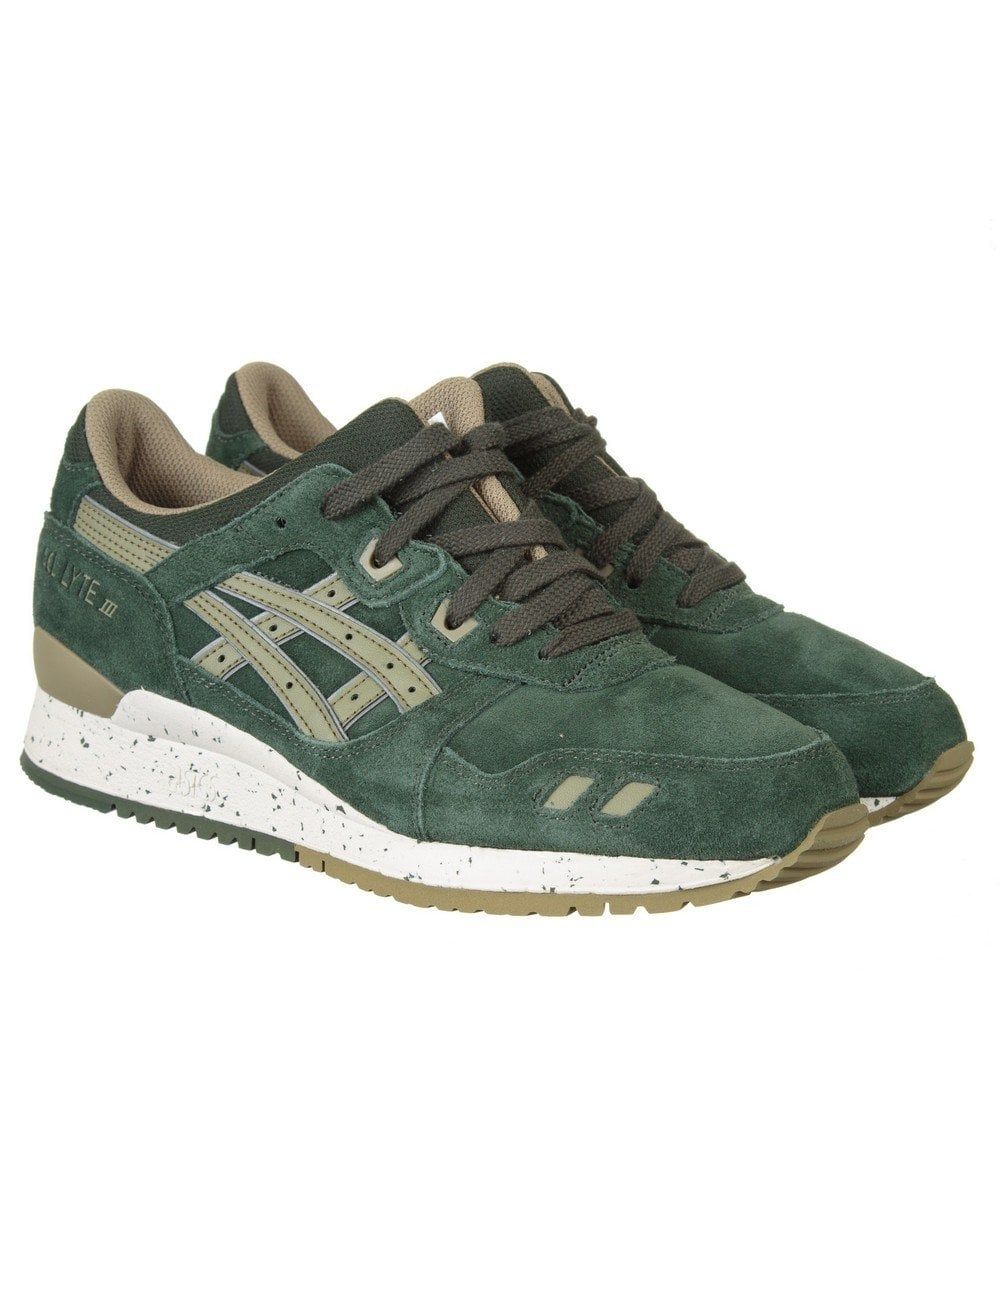 1ce6d9616f Asics Gel Lyte III Shoes - Duffle Bag/Light Olive (Tonal Pack ...